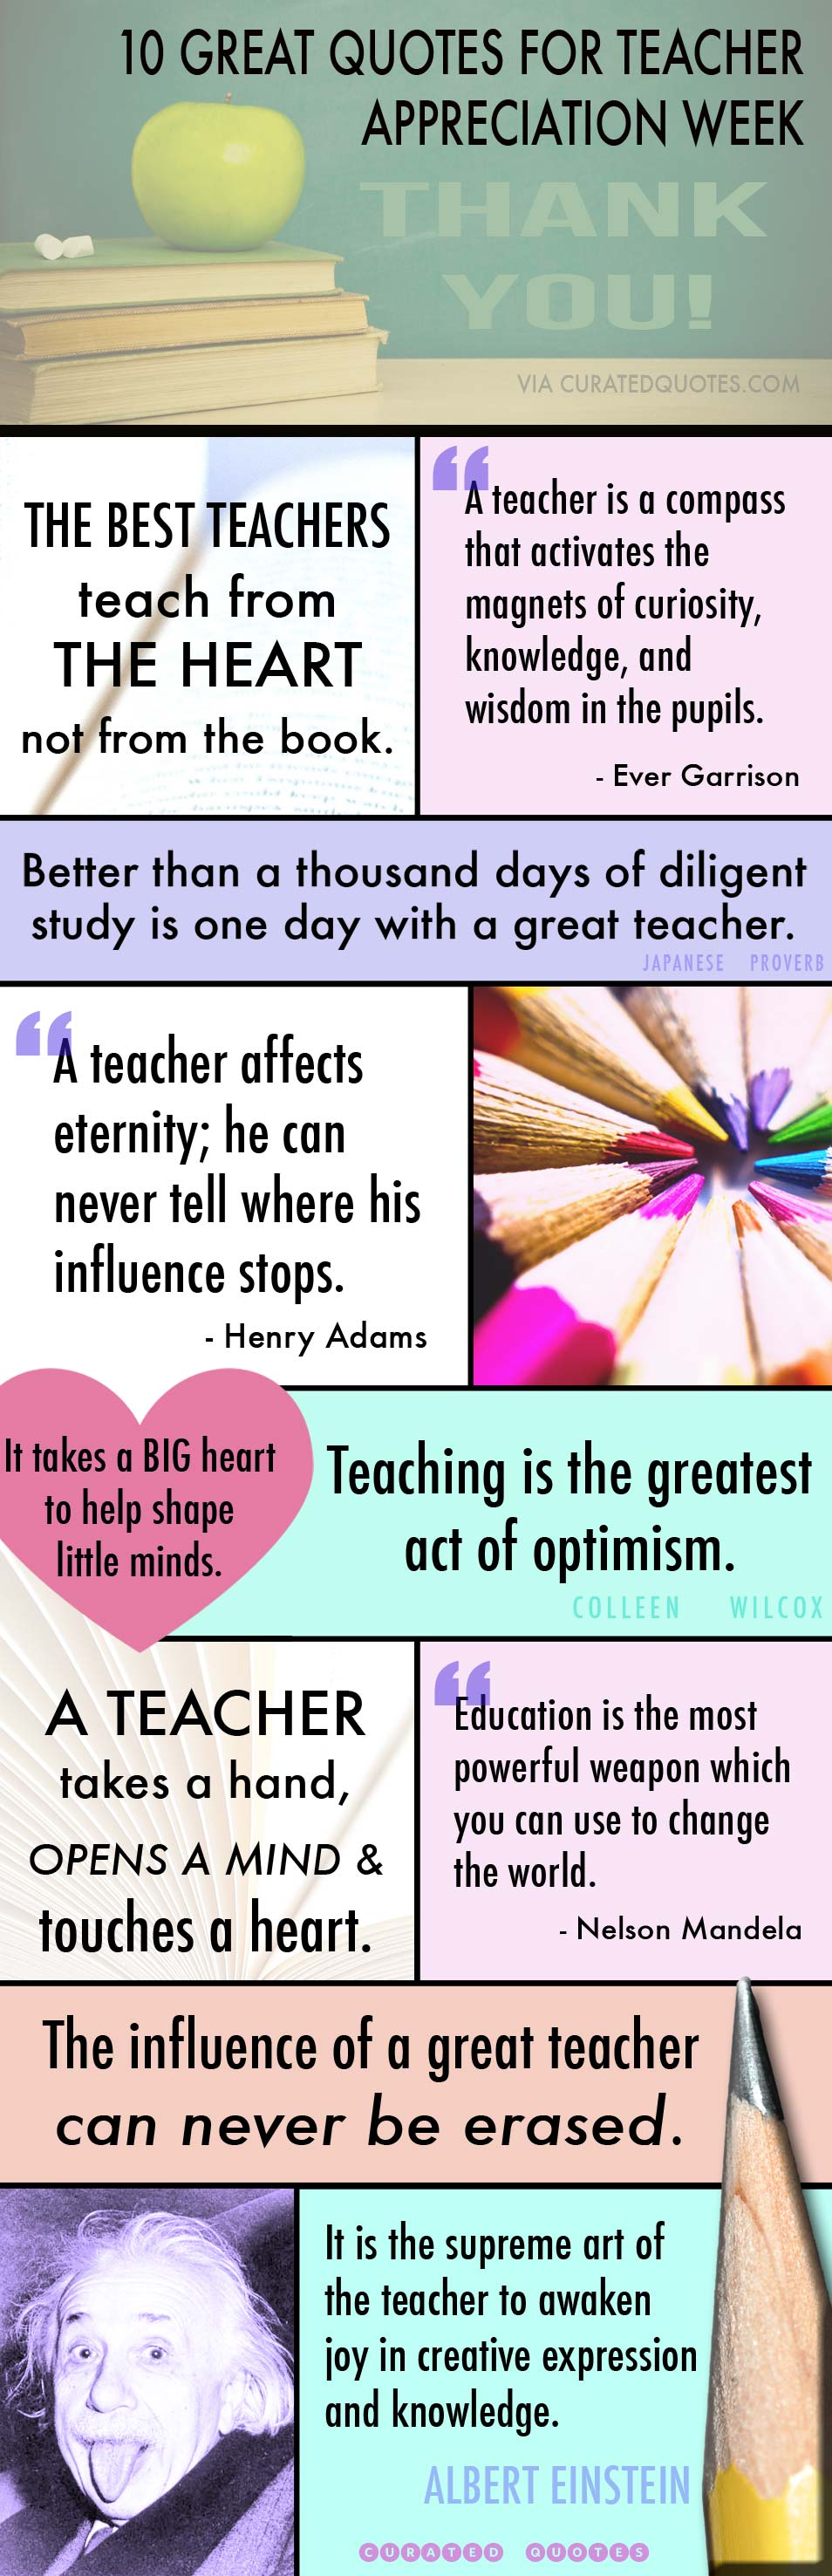 Appreciation Quotes 32 Thank You Quotes For Teachers  Curated Quotes